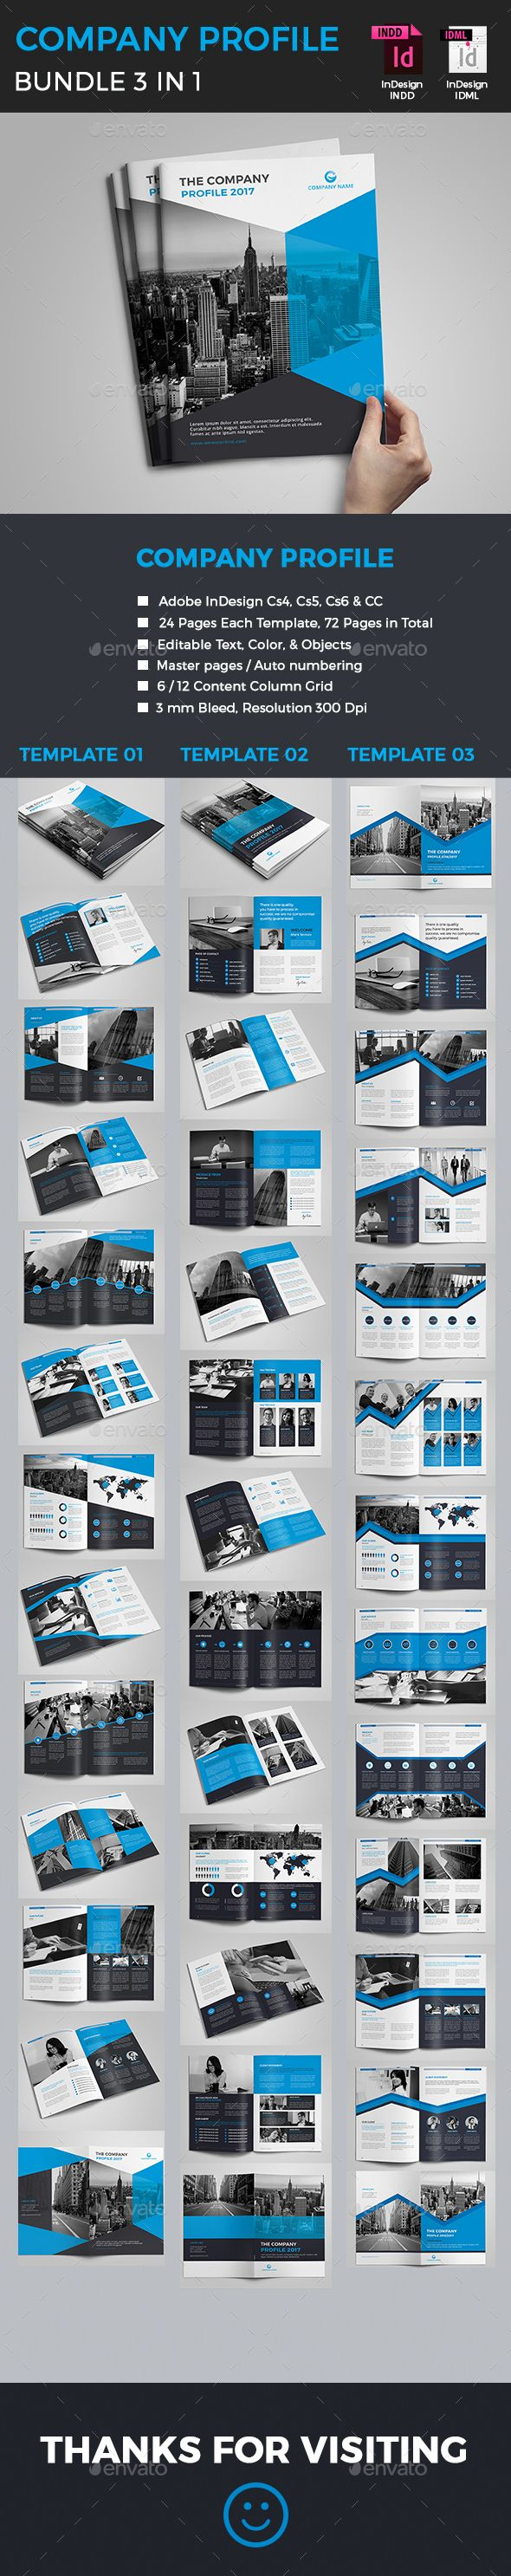 Example Of Company Profile Template Awesome Company Profile Bundle  Pinterest  Brochure Examples Brochures .